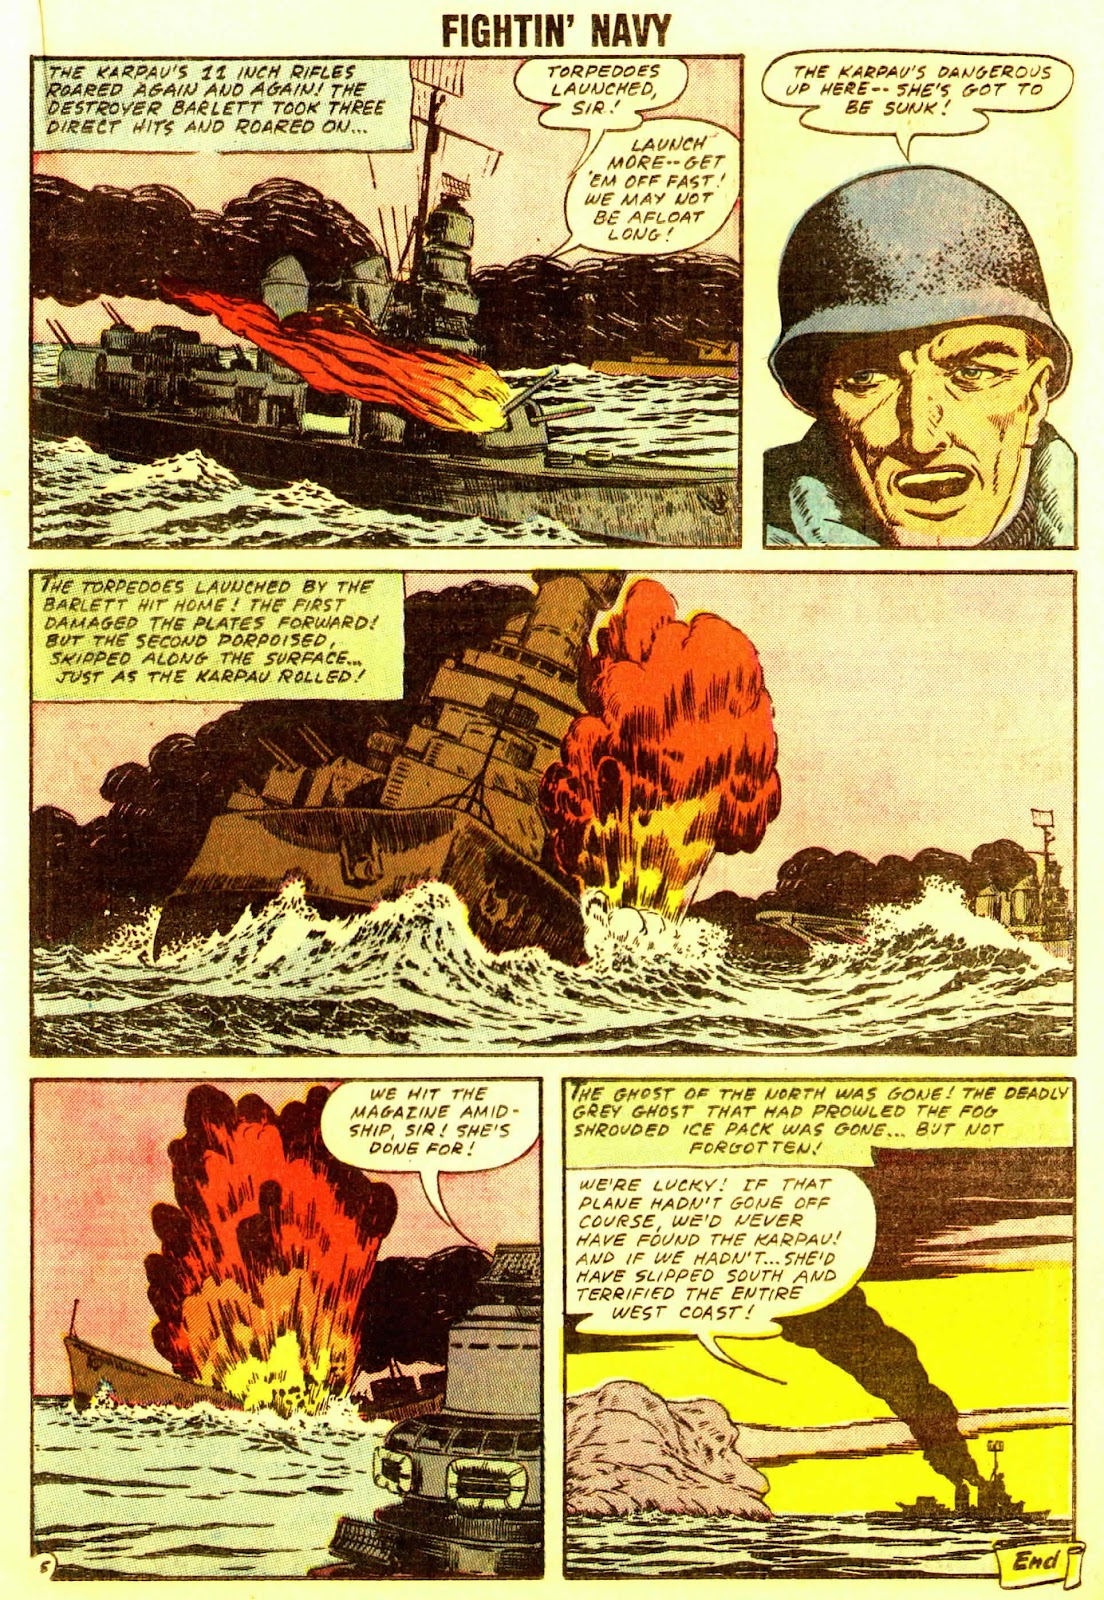 Read online Fightin' Navy comic -  Issue #83 - 41